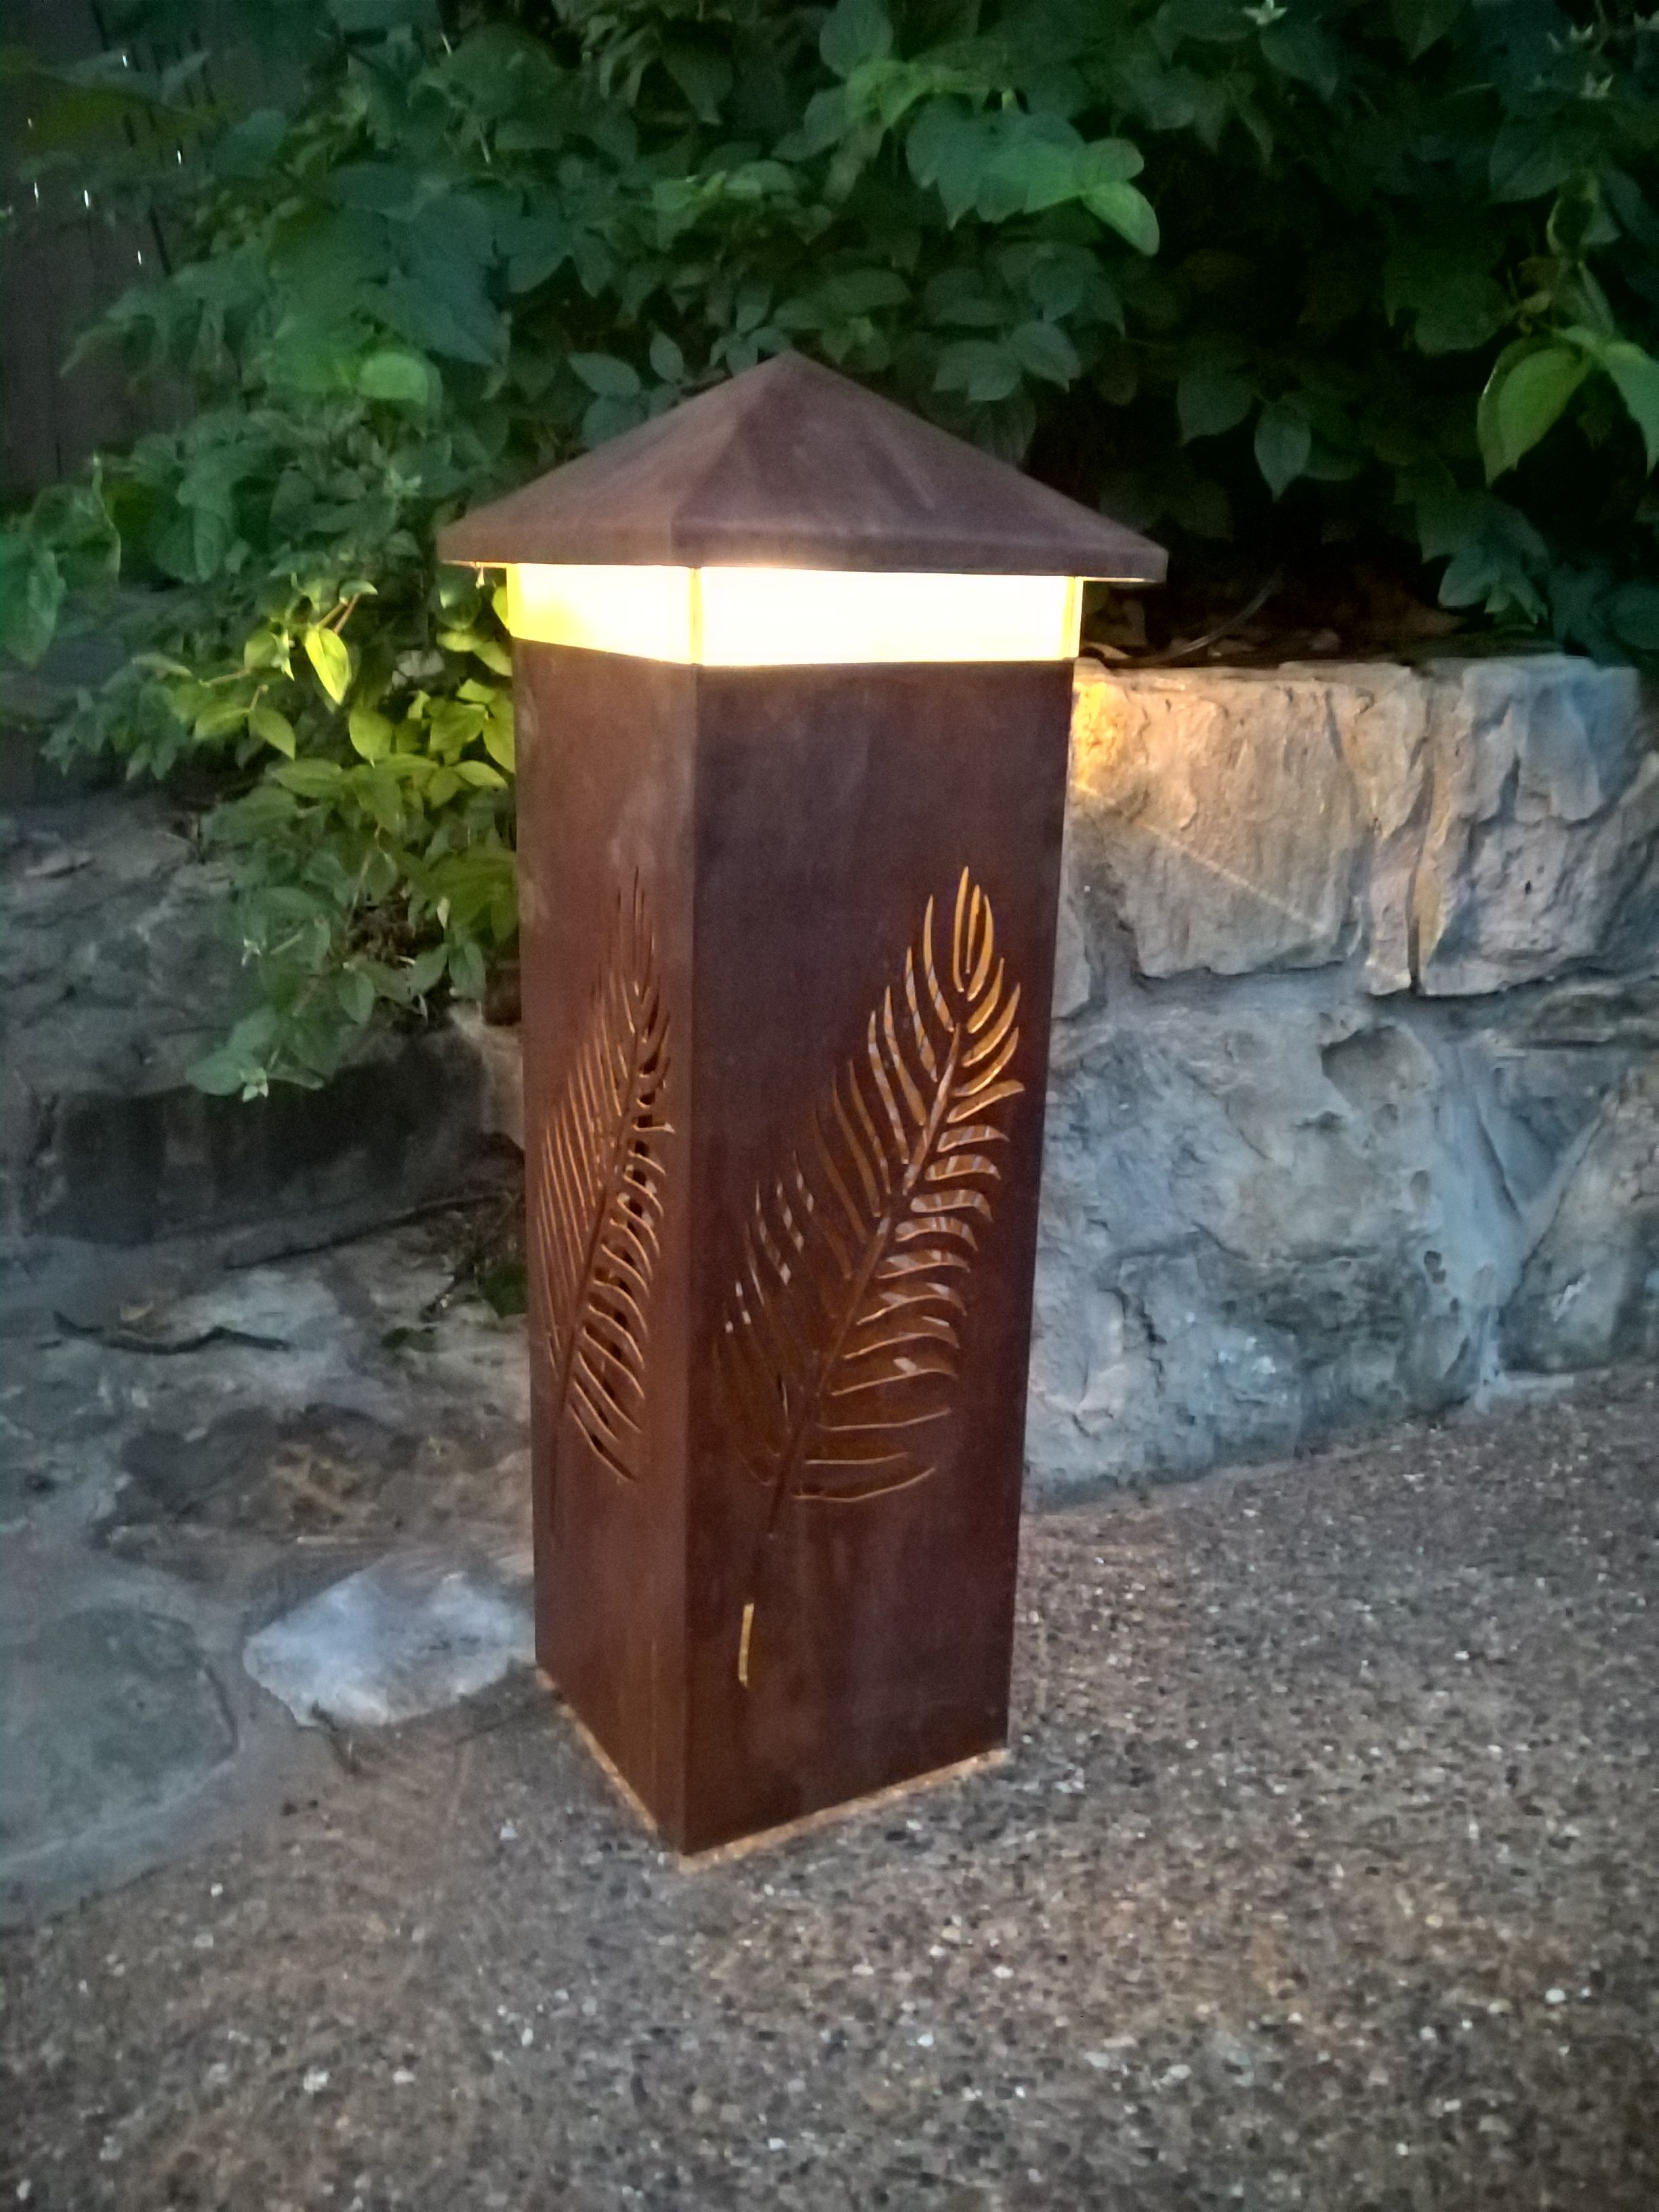 This Steel Light Bollard Is 29 Tall And Has A Rust Patina It Uses A 12 Volt Led Light That Is Compatible Steel Lighting Landscape Lighting Outdoor Lighting